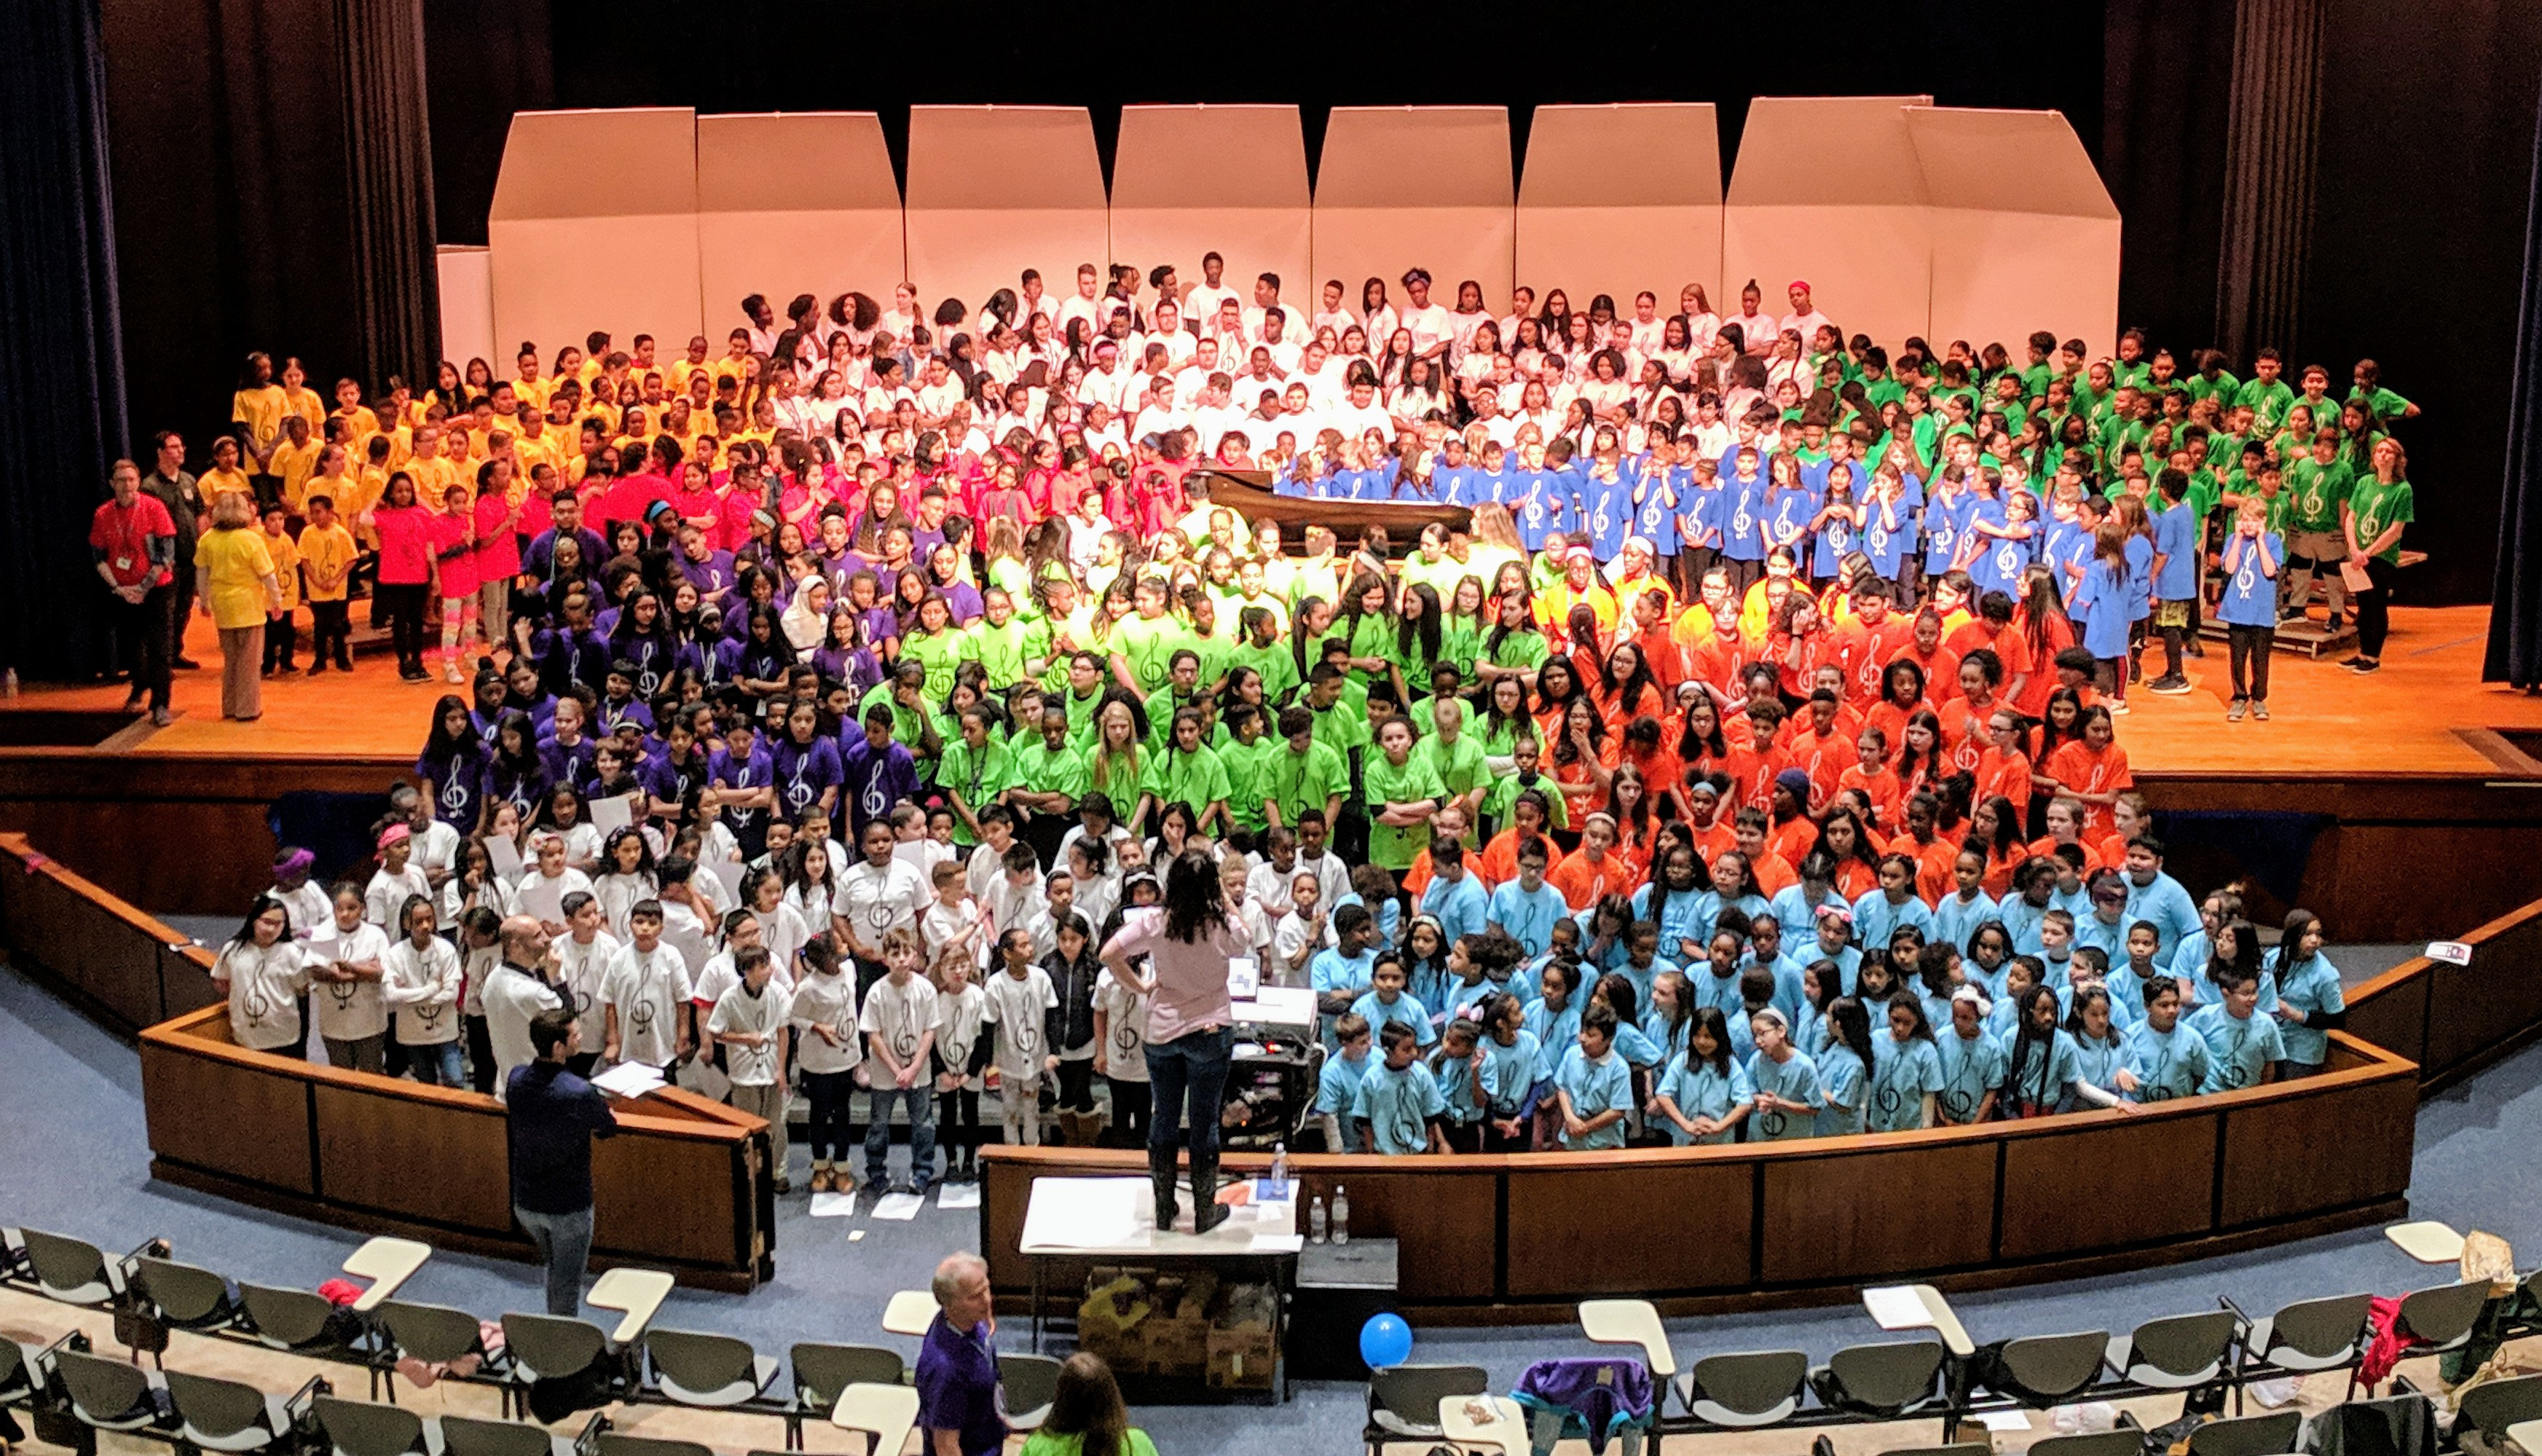 Norristown Area School District welcomes Spring with Choral Festival